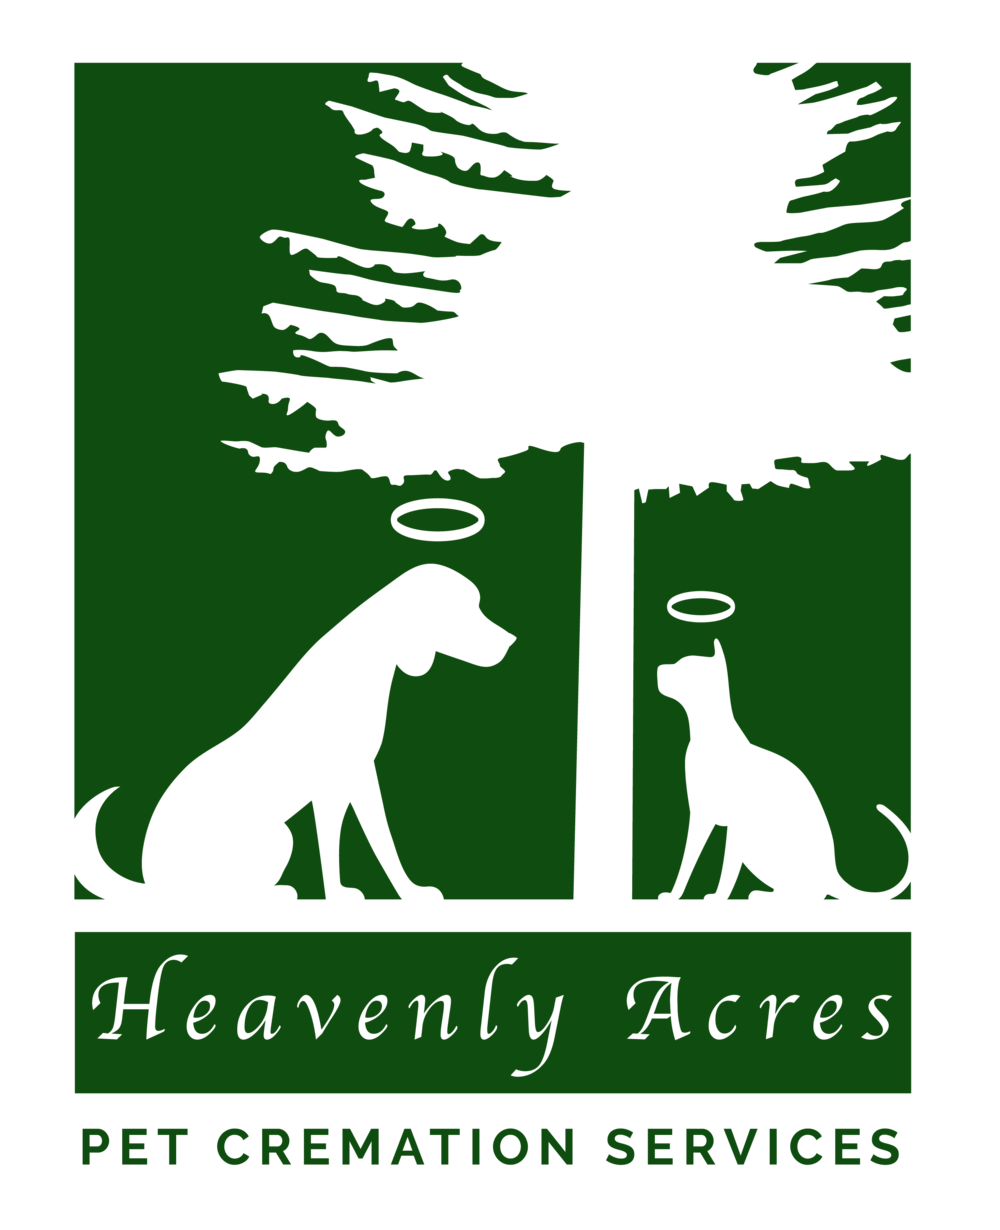 Heavenly-Acres-Logo-1